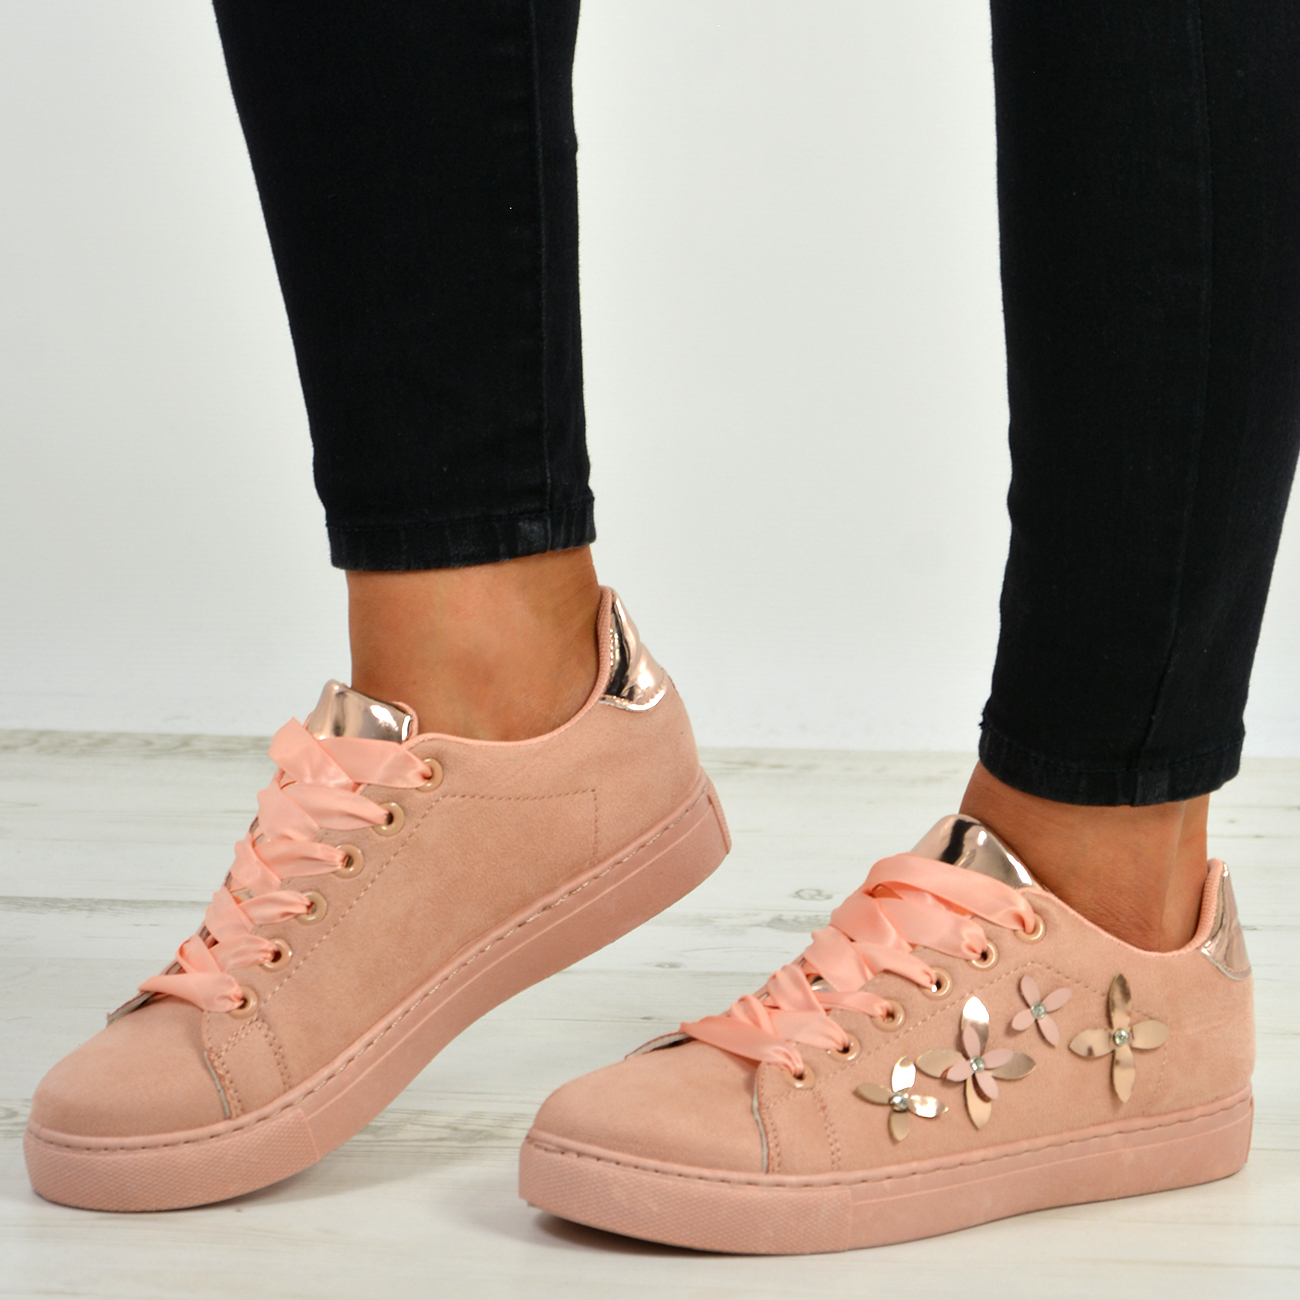 New-Womens-Lace-Up-Flower-Trainers-Ladies-Studded-Plimsoll-Sneaker-Shoes-Size-Uk